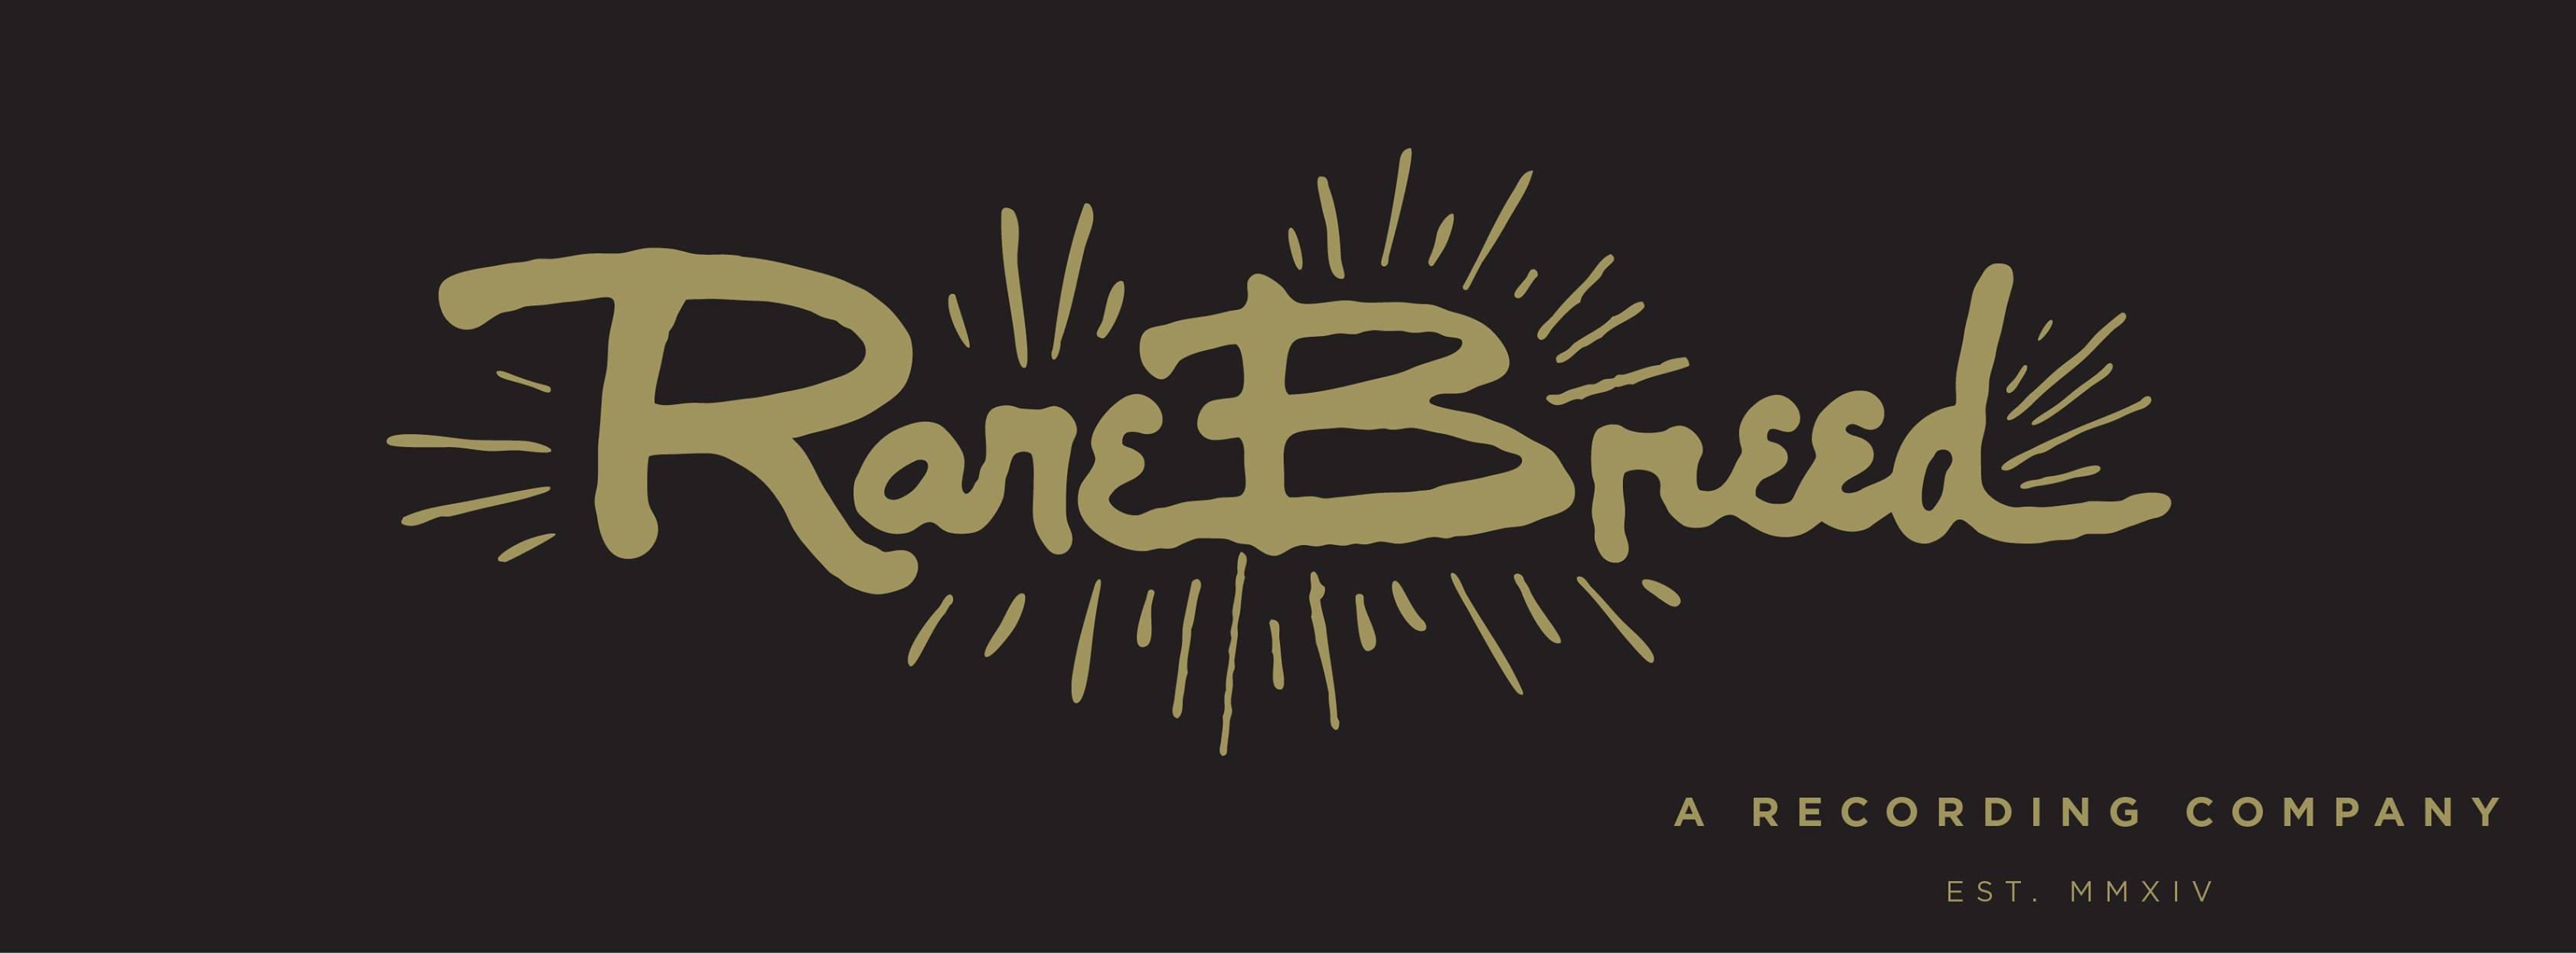 rare breed recording co header